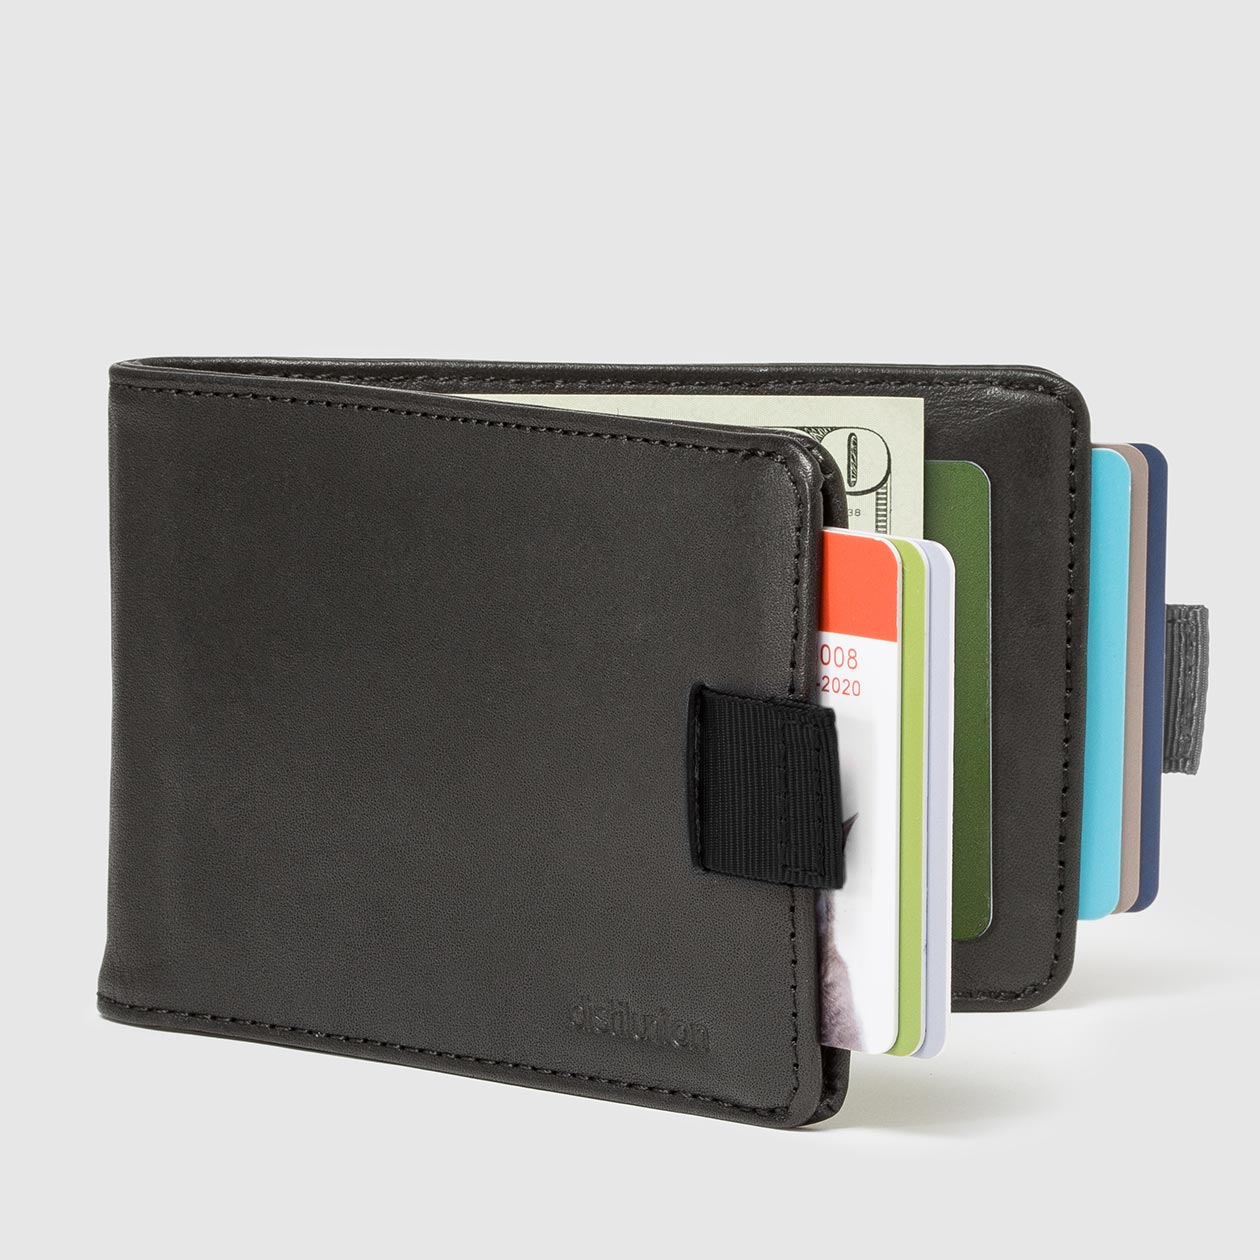 2e1c84c41298 ... Distil Union Wally Bifold Pull-Tab Billfold Wallet in Ink Black Leather  with RFID Blocking ...